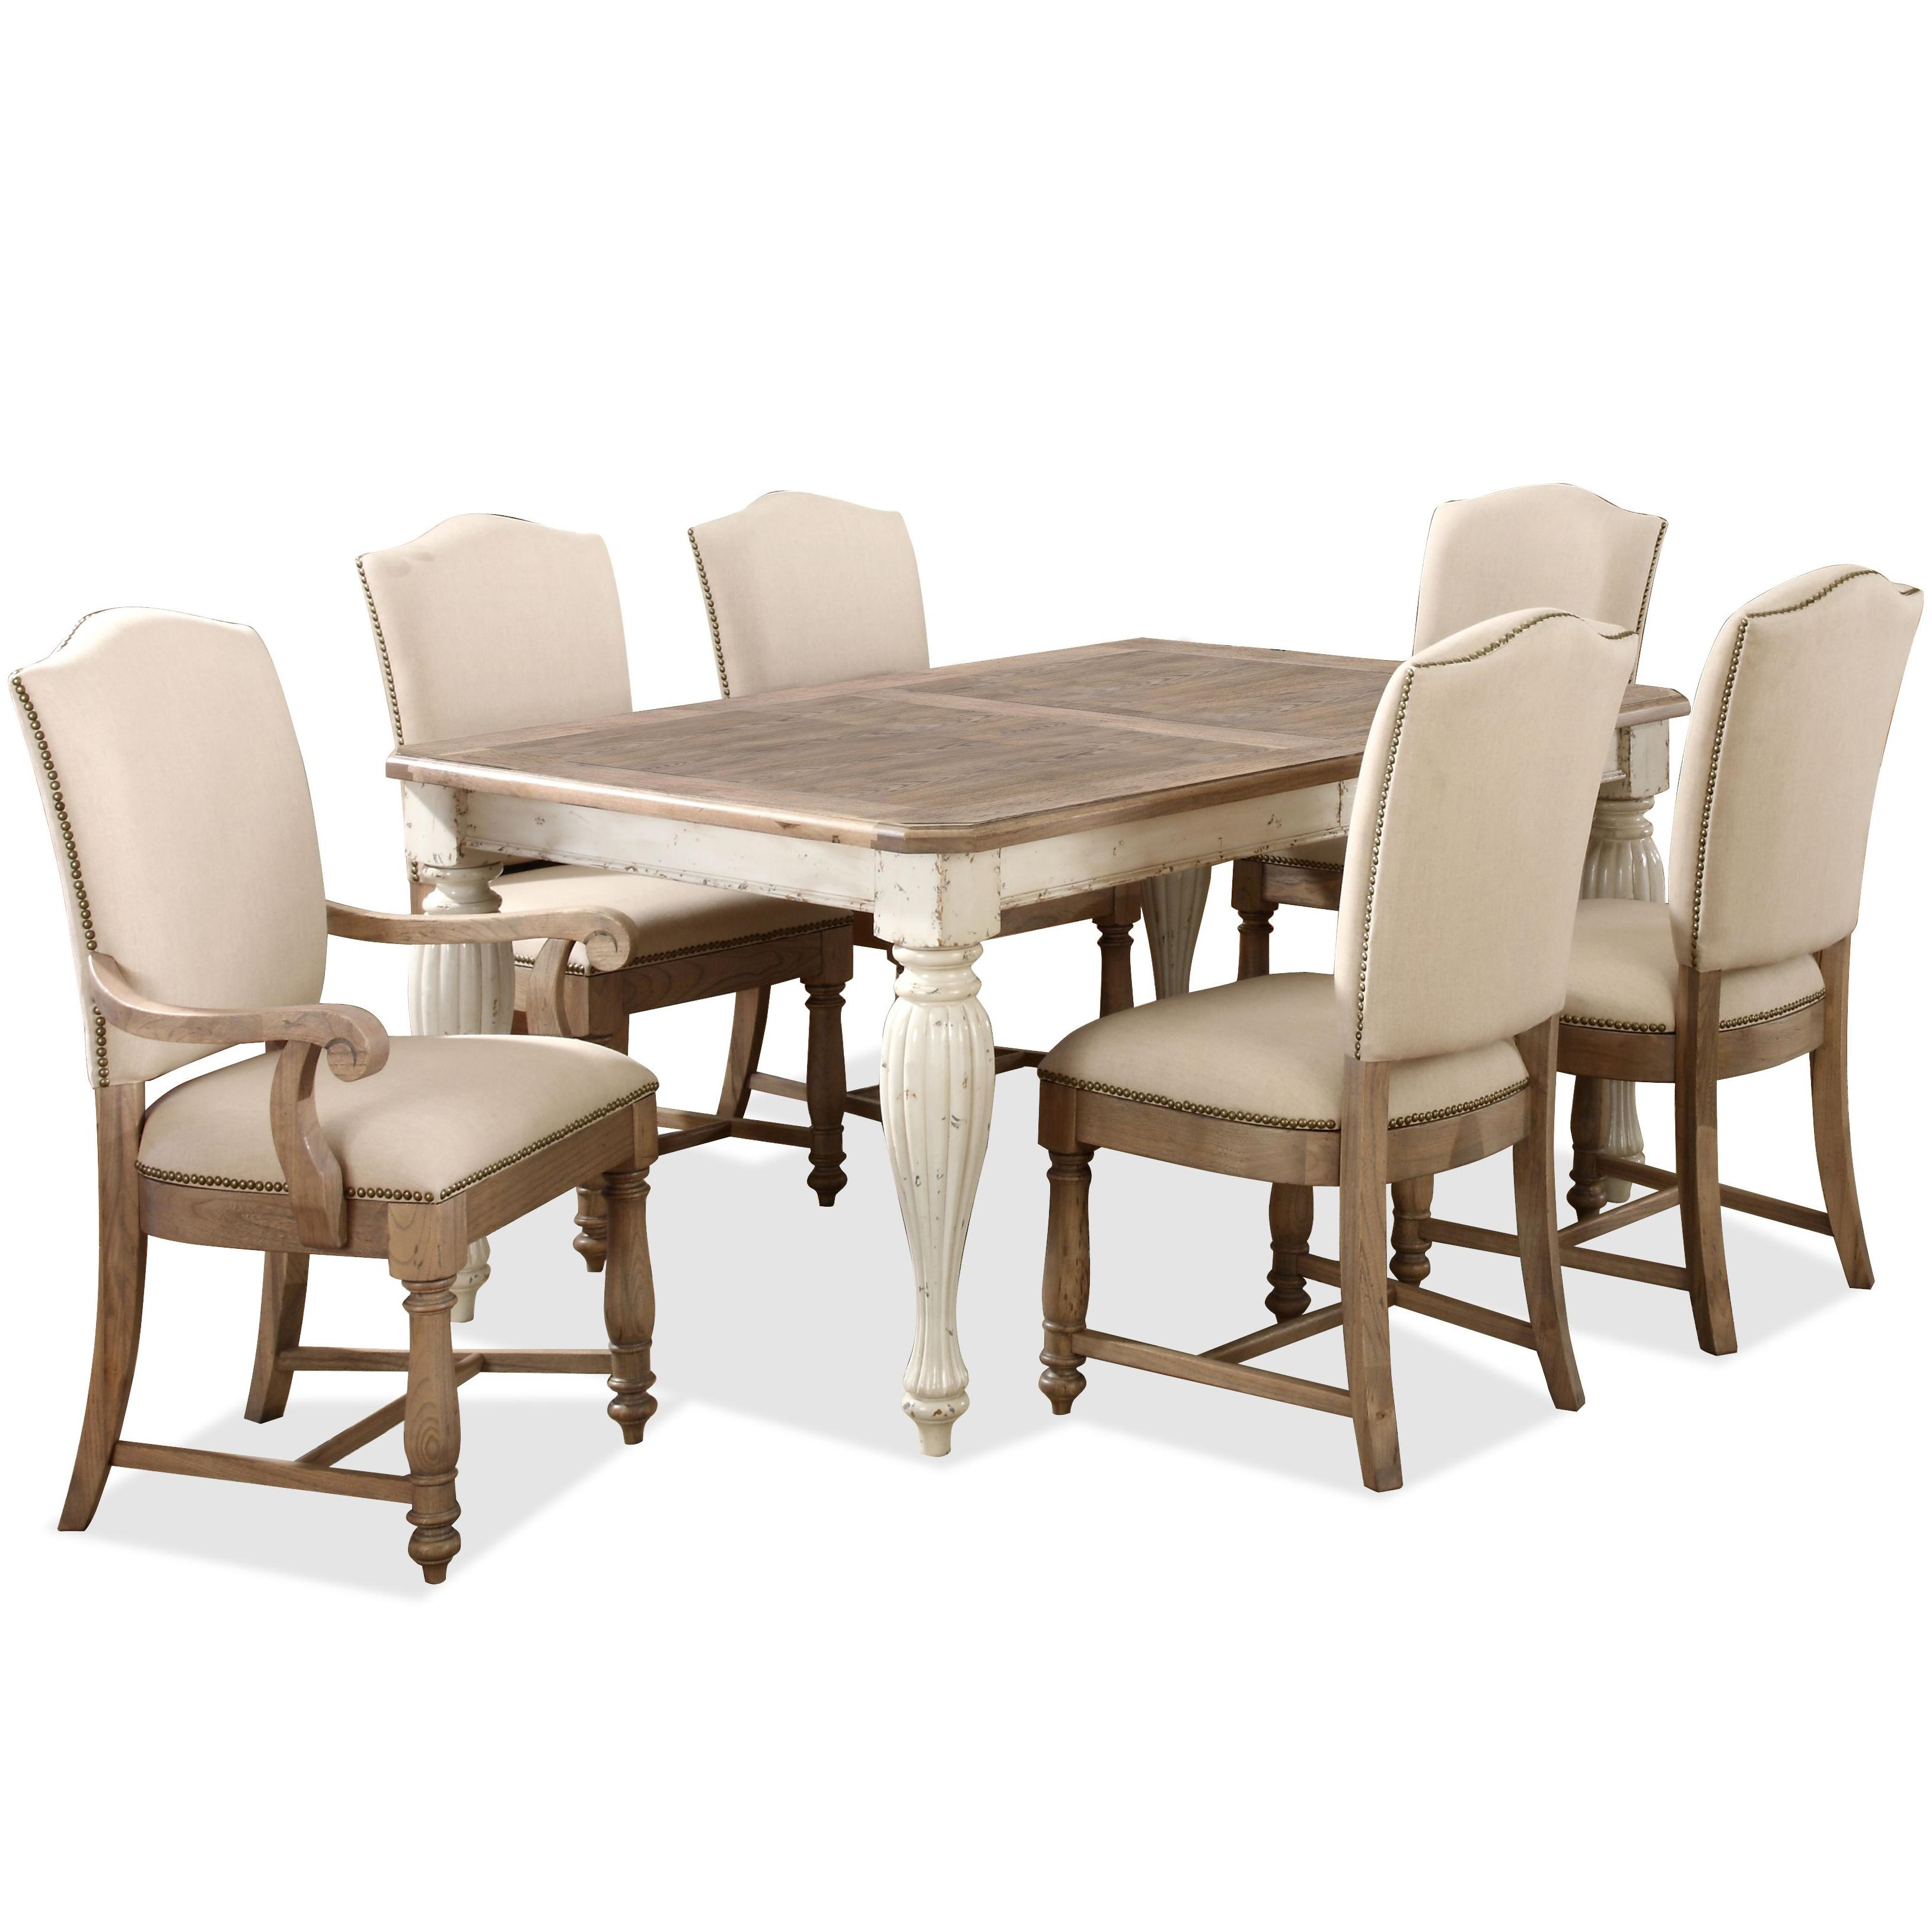 two tone kitchen table Rectangular Leg Dining Table with 18 Leaf